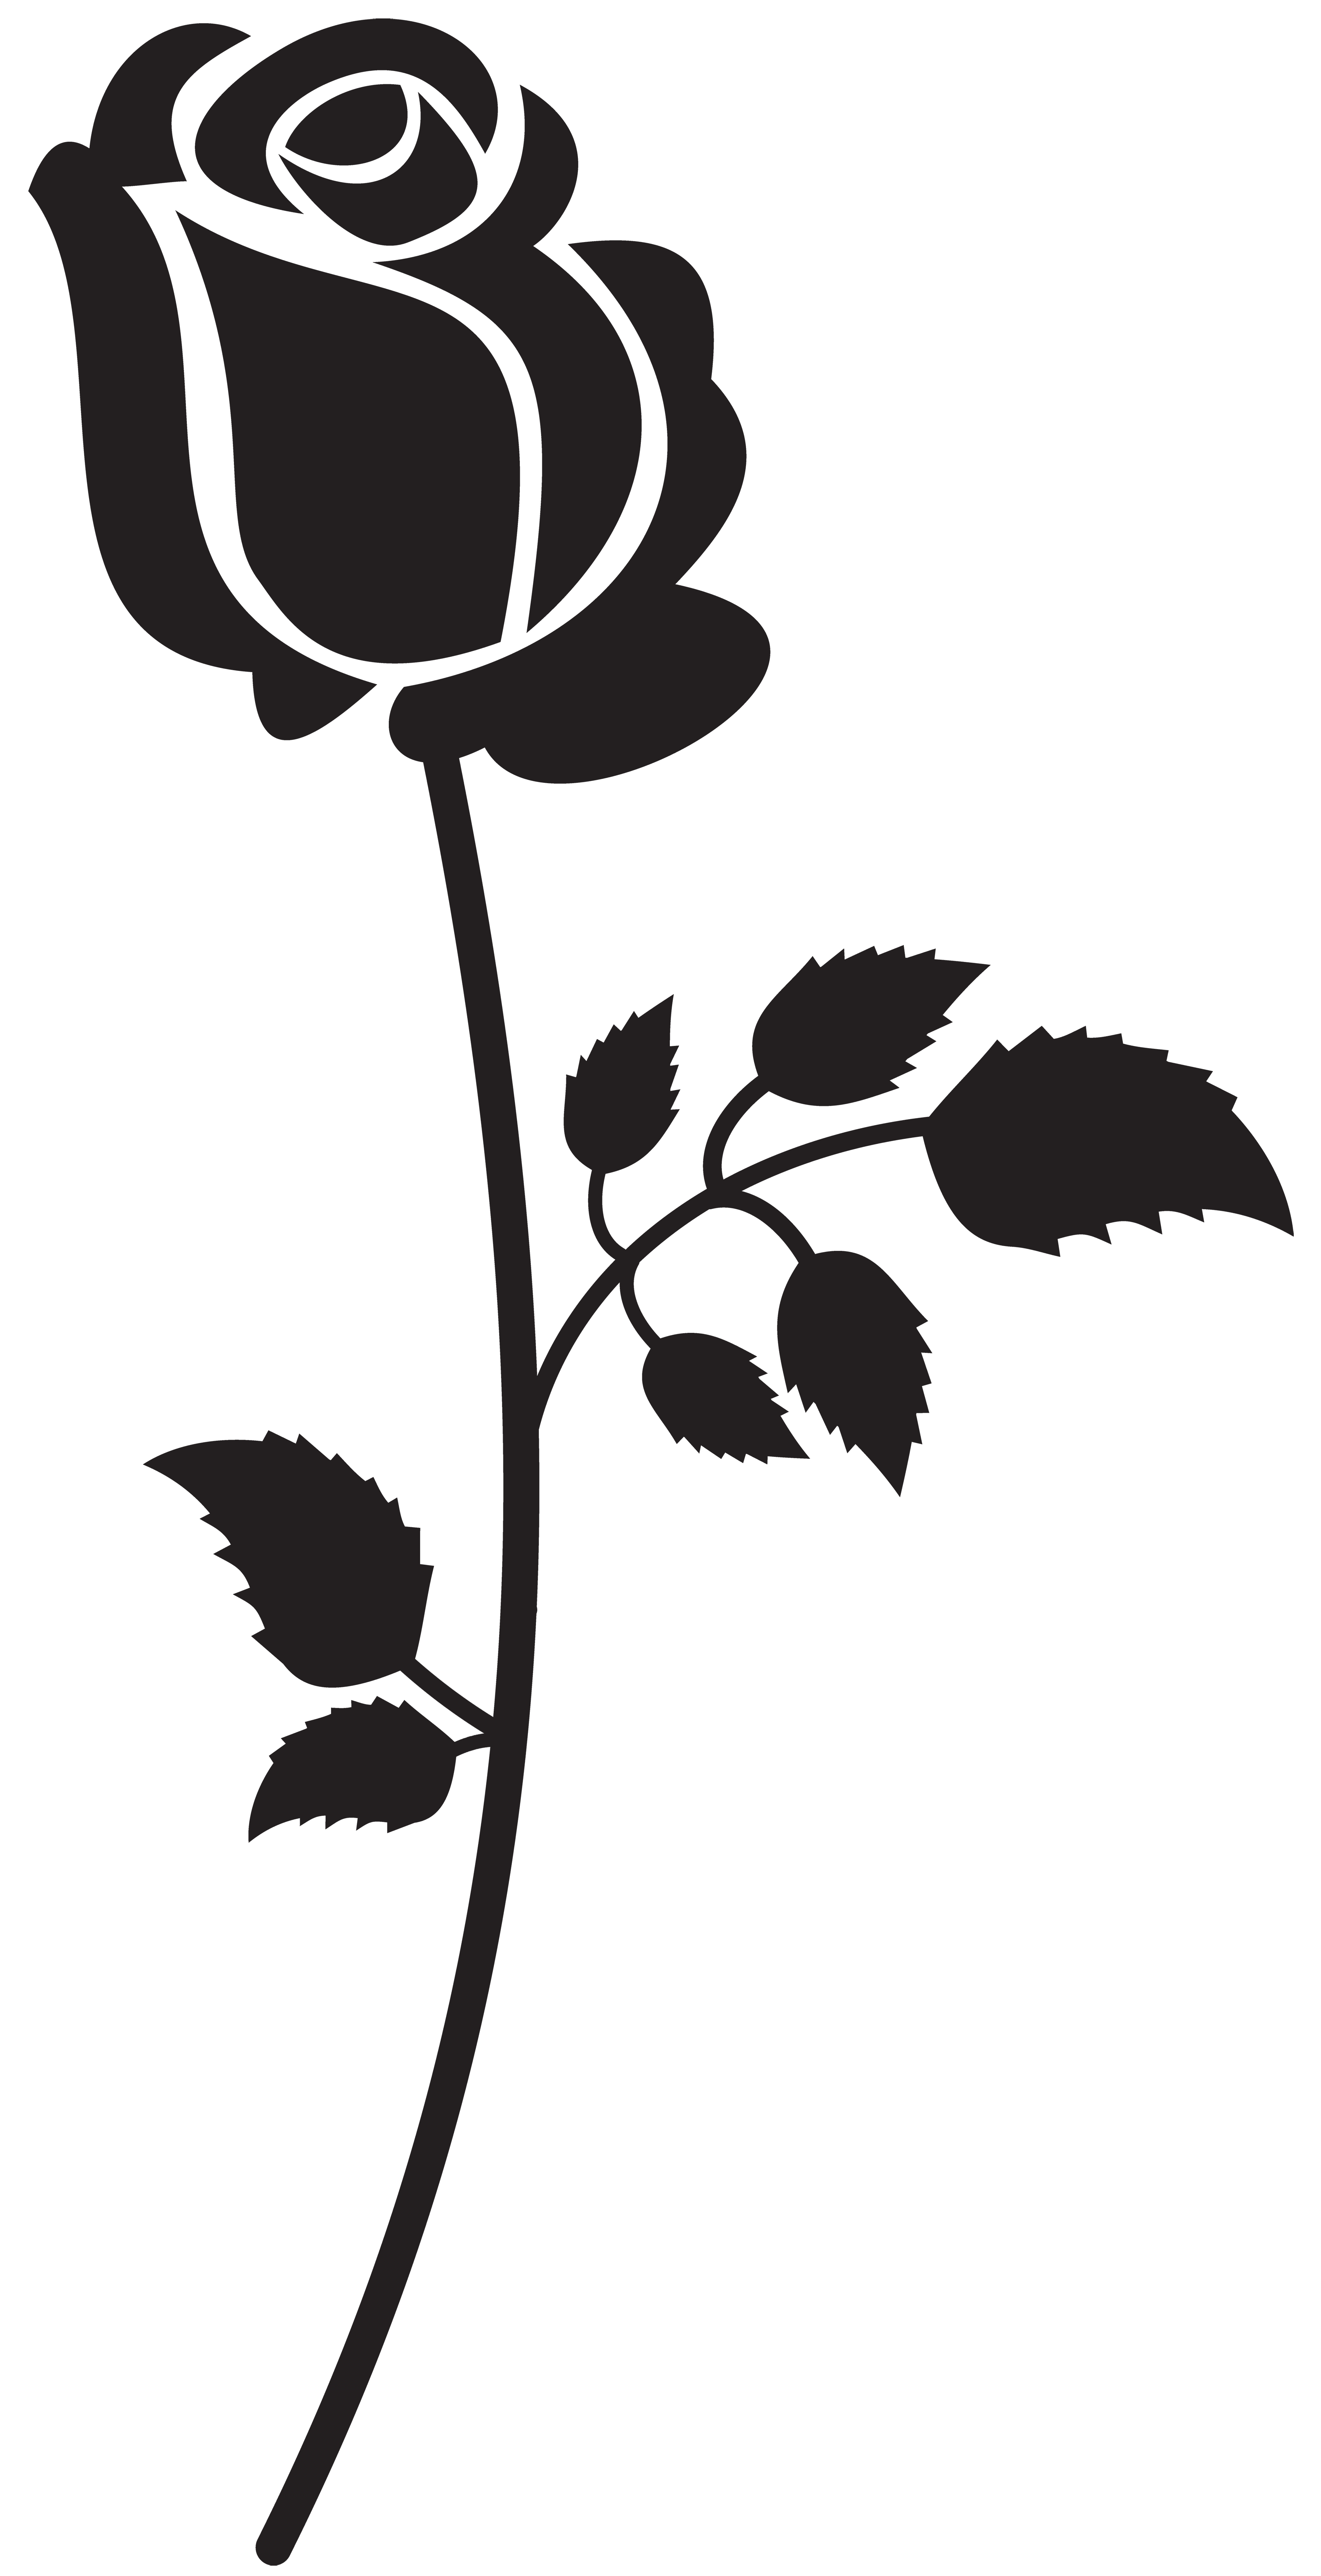 Rose Silhouette Png - Rose Silhouette PNG Clip Art Image   Gallery Yopriceville - High ...